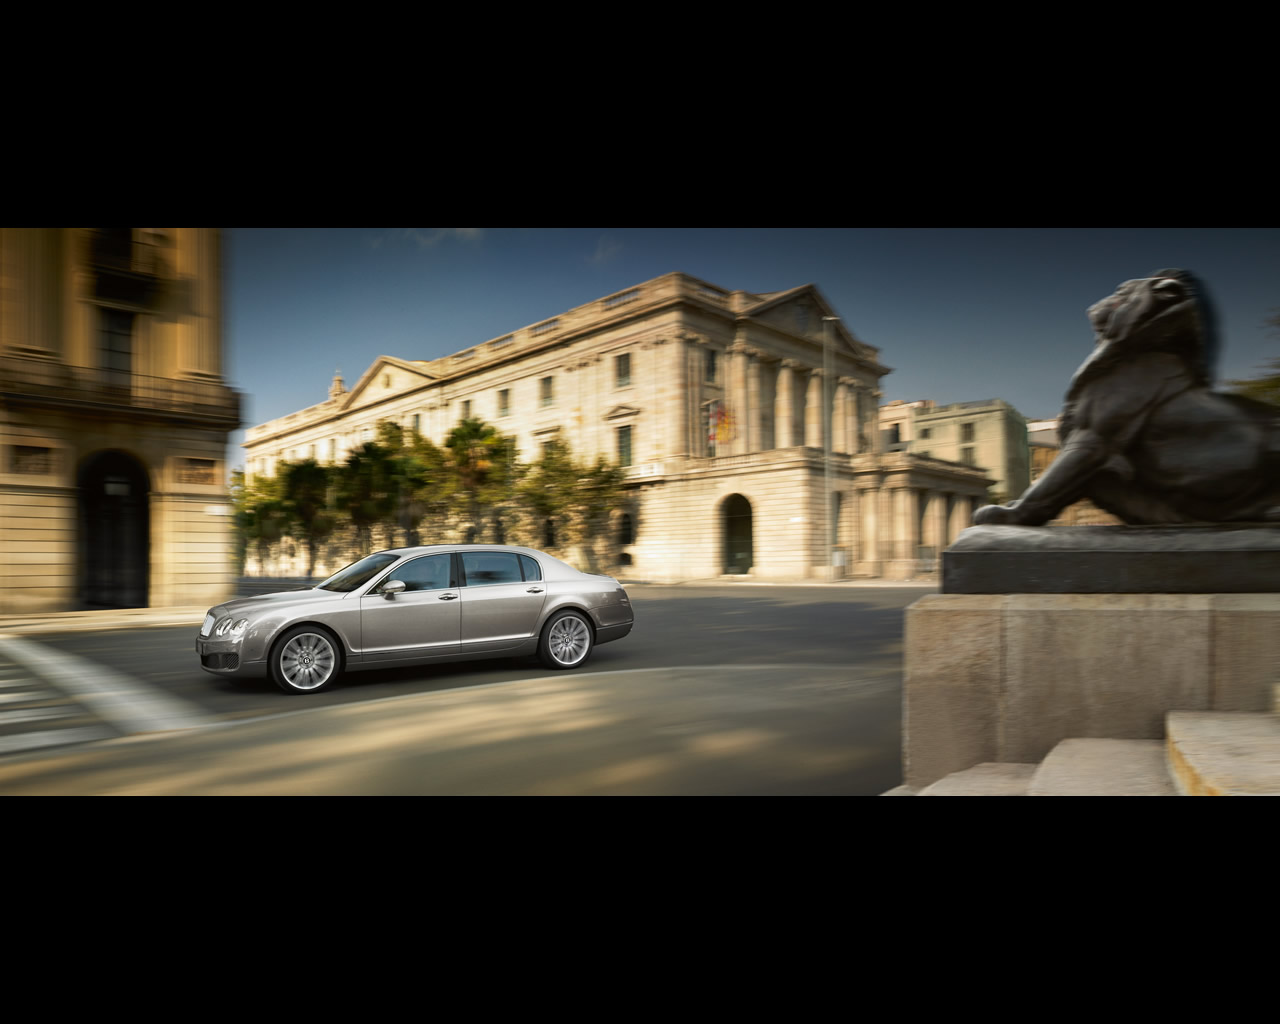 Wallpapers of the Bentley Continental Flying Spur Speed 2008